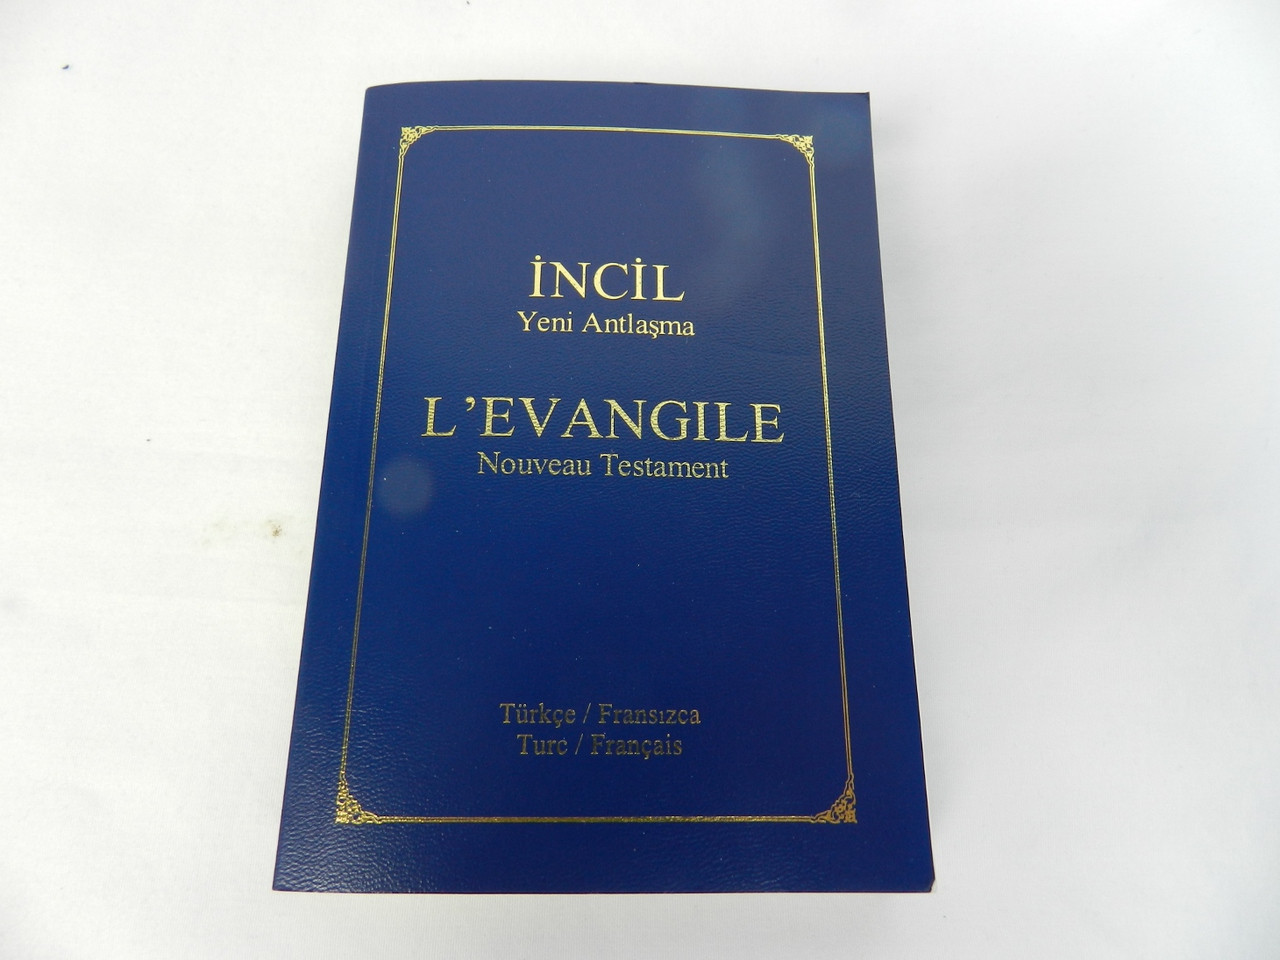 turkish    french bilingual new testament - turc    francais   frasizc